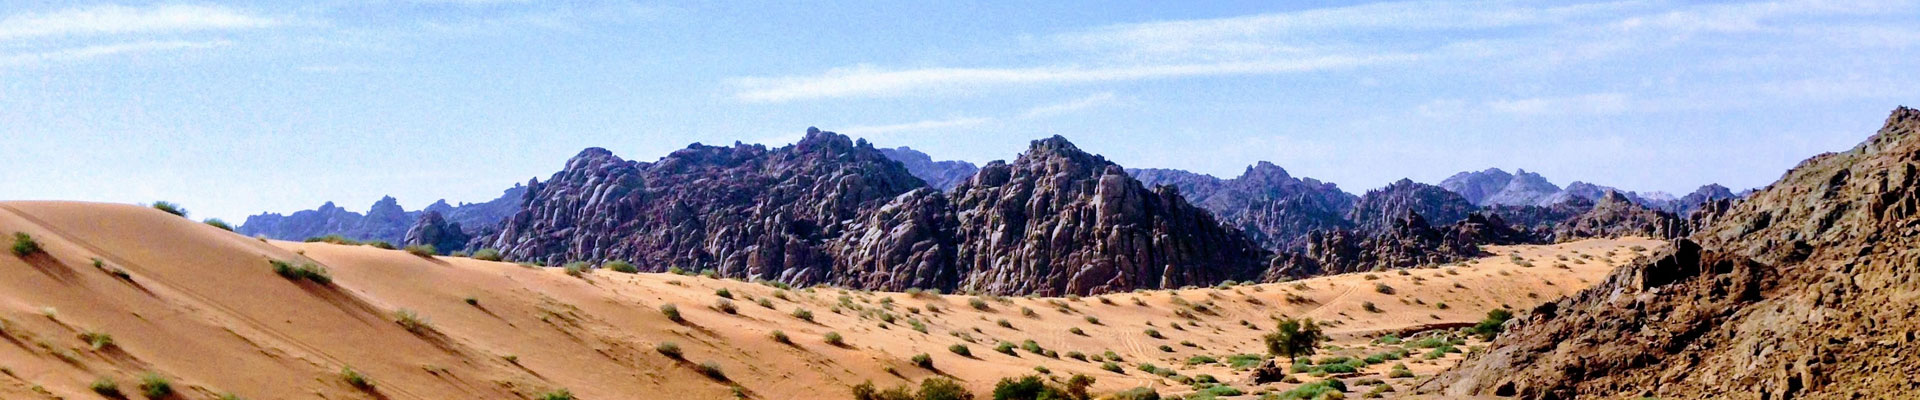 Desert and mountains in Saudi Arabia